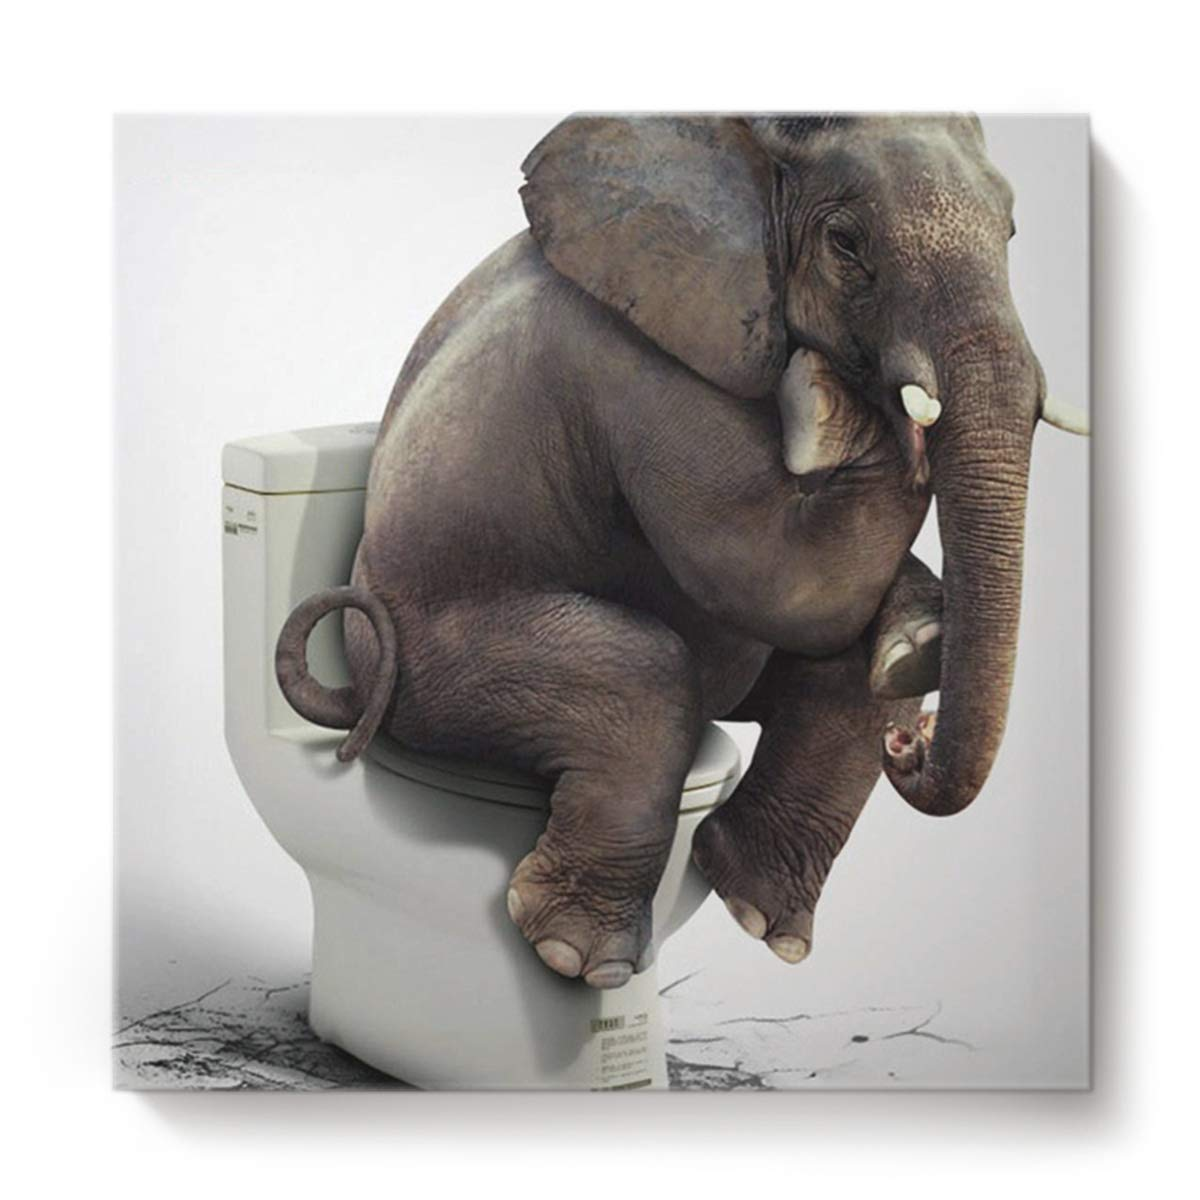 Square Canvas Wall Art Oil Painting for Bedroom Living Room Home Decor,Funny Elephant Sitting on The Toilet Animal Pattern Office Artworks,Stretched by Wooden Frame,Ready to Hang,16 x 16 Inch